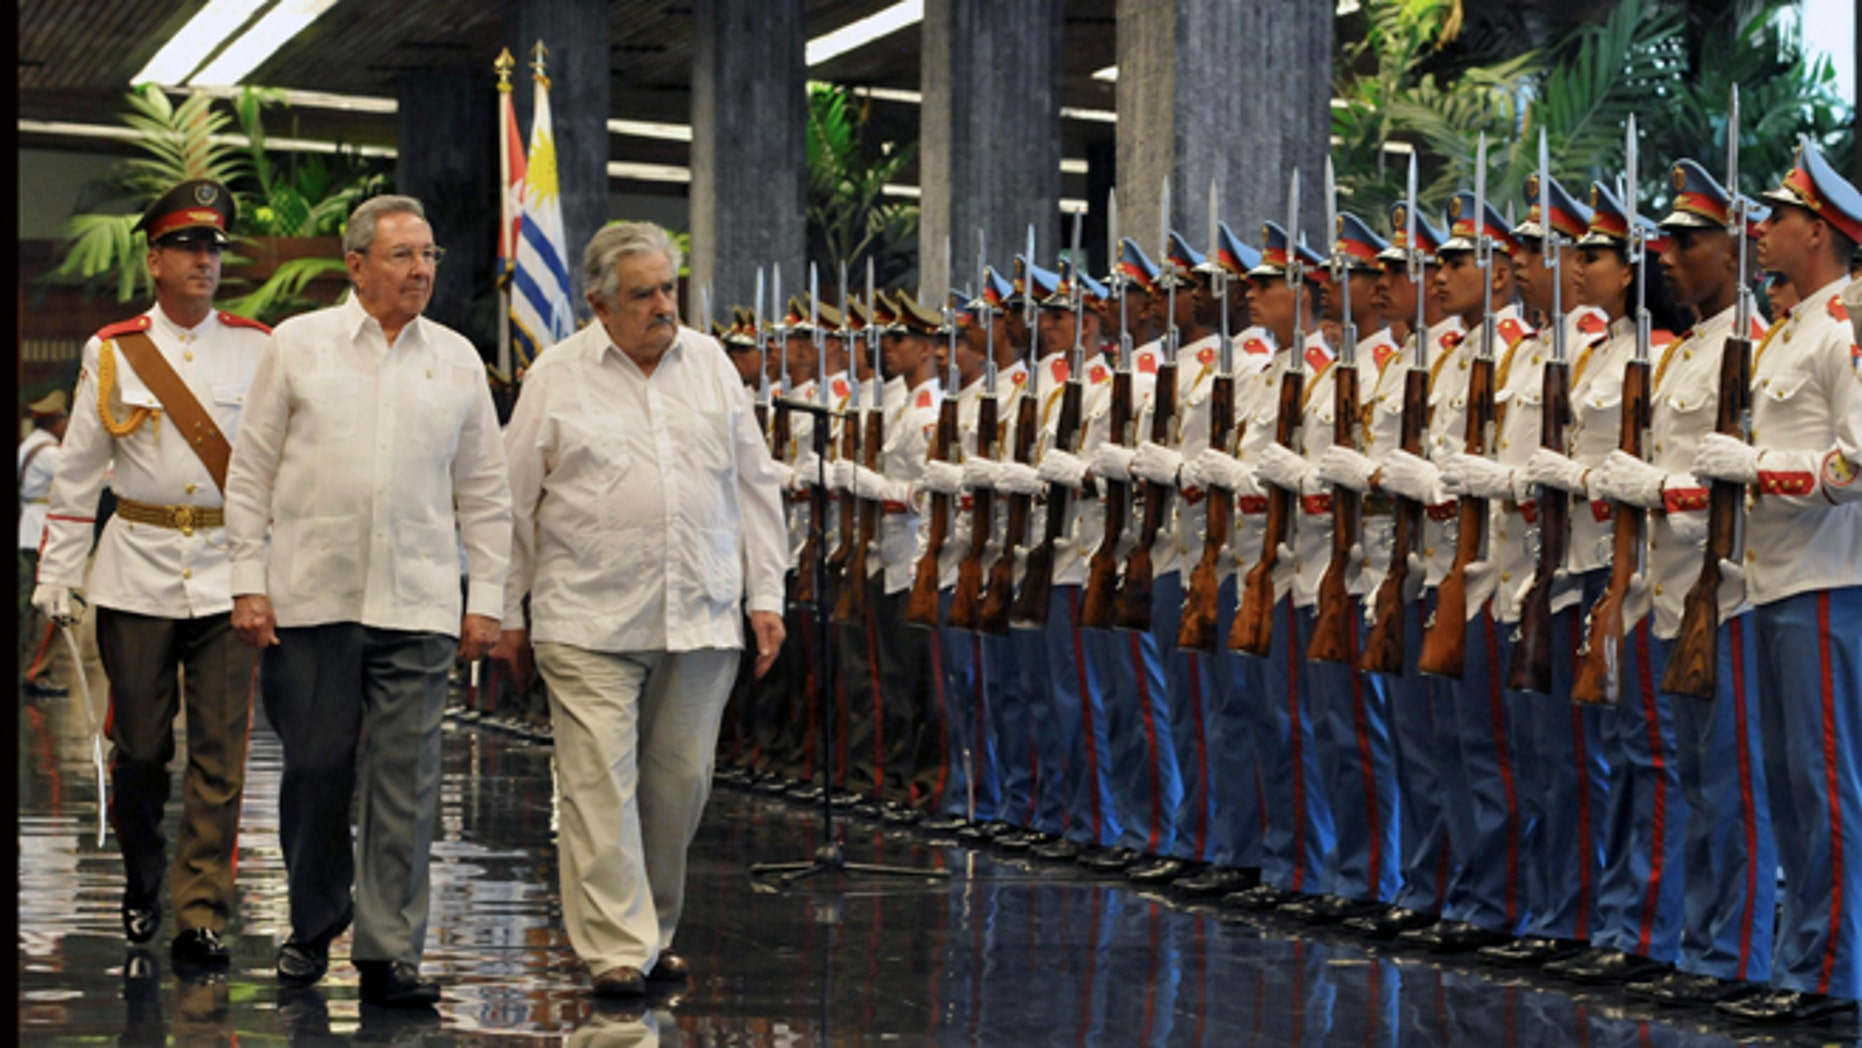 Cuba's President Raul Castro, left, and Uruguay's President Jose Mujica review the honor guard during a welcoming ceremony at Revolution Palace in Havana, Cuba, Wednesday, July 24, 2013. (AP Photo/Ernesto Mastrascusa, Pool)